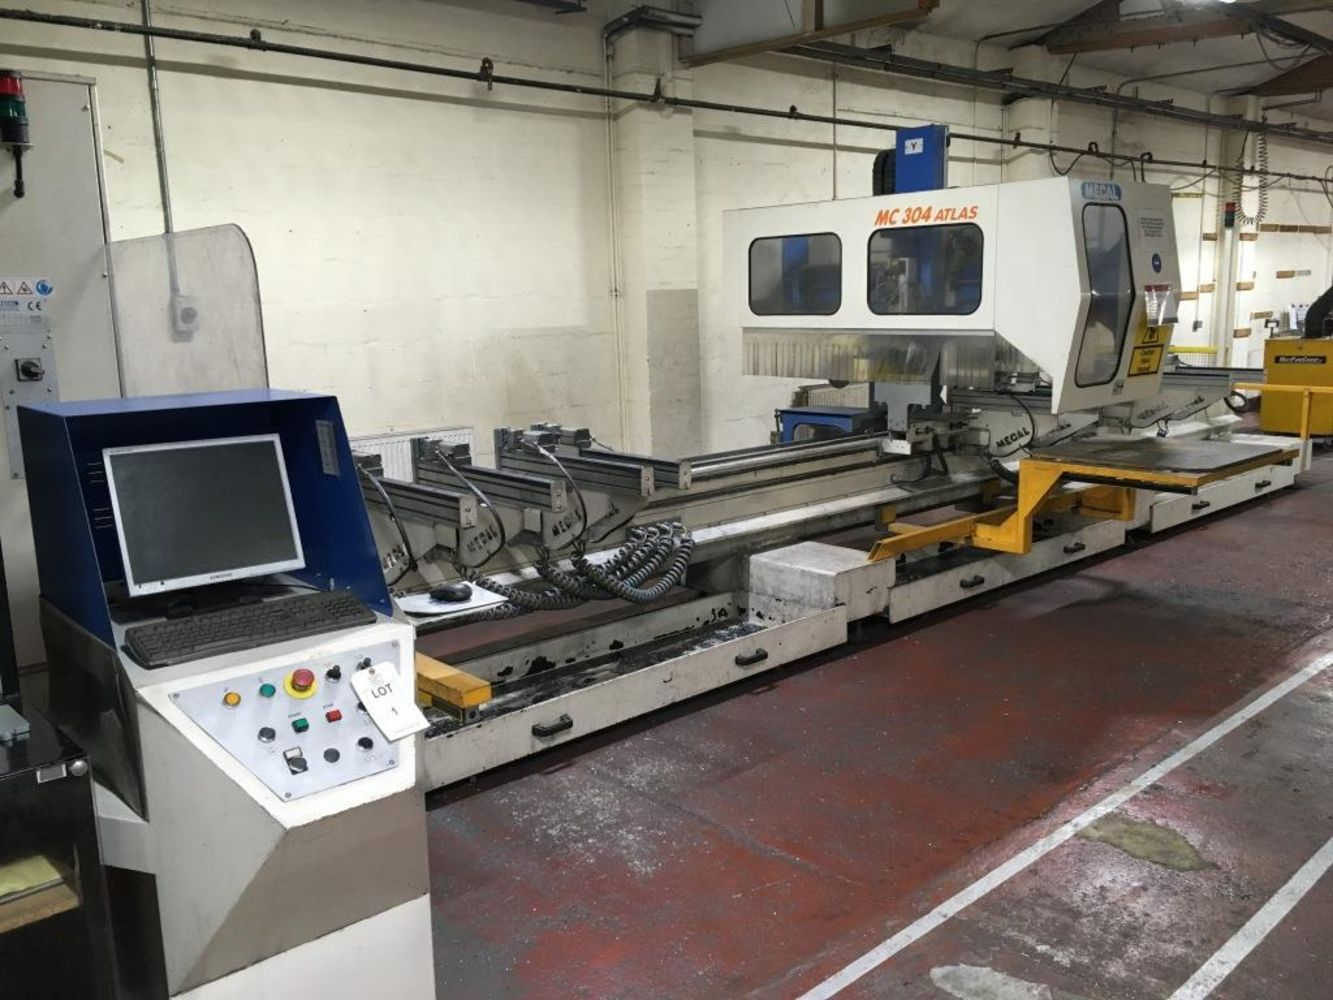 Metal fabrication plant and machinery, commercial vehicles, forklifts and sundry equipment